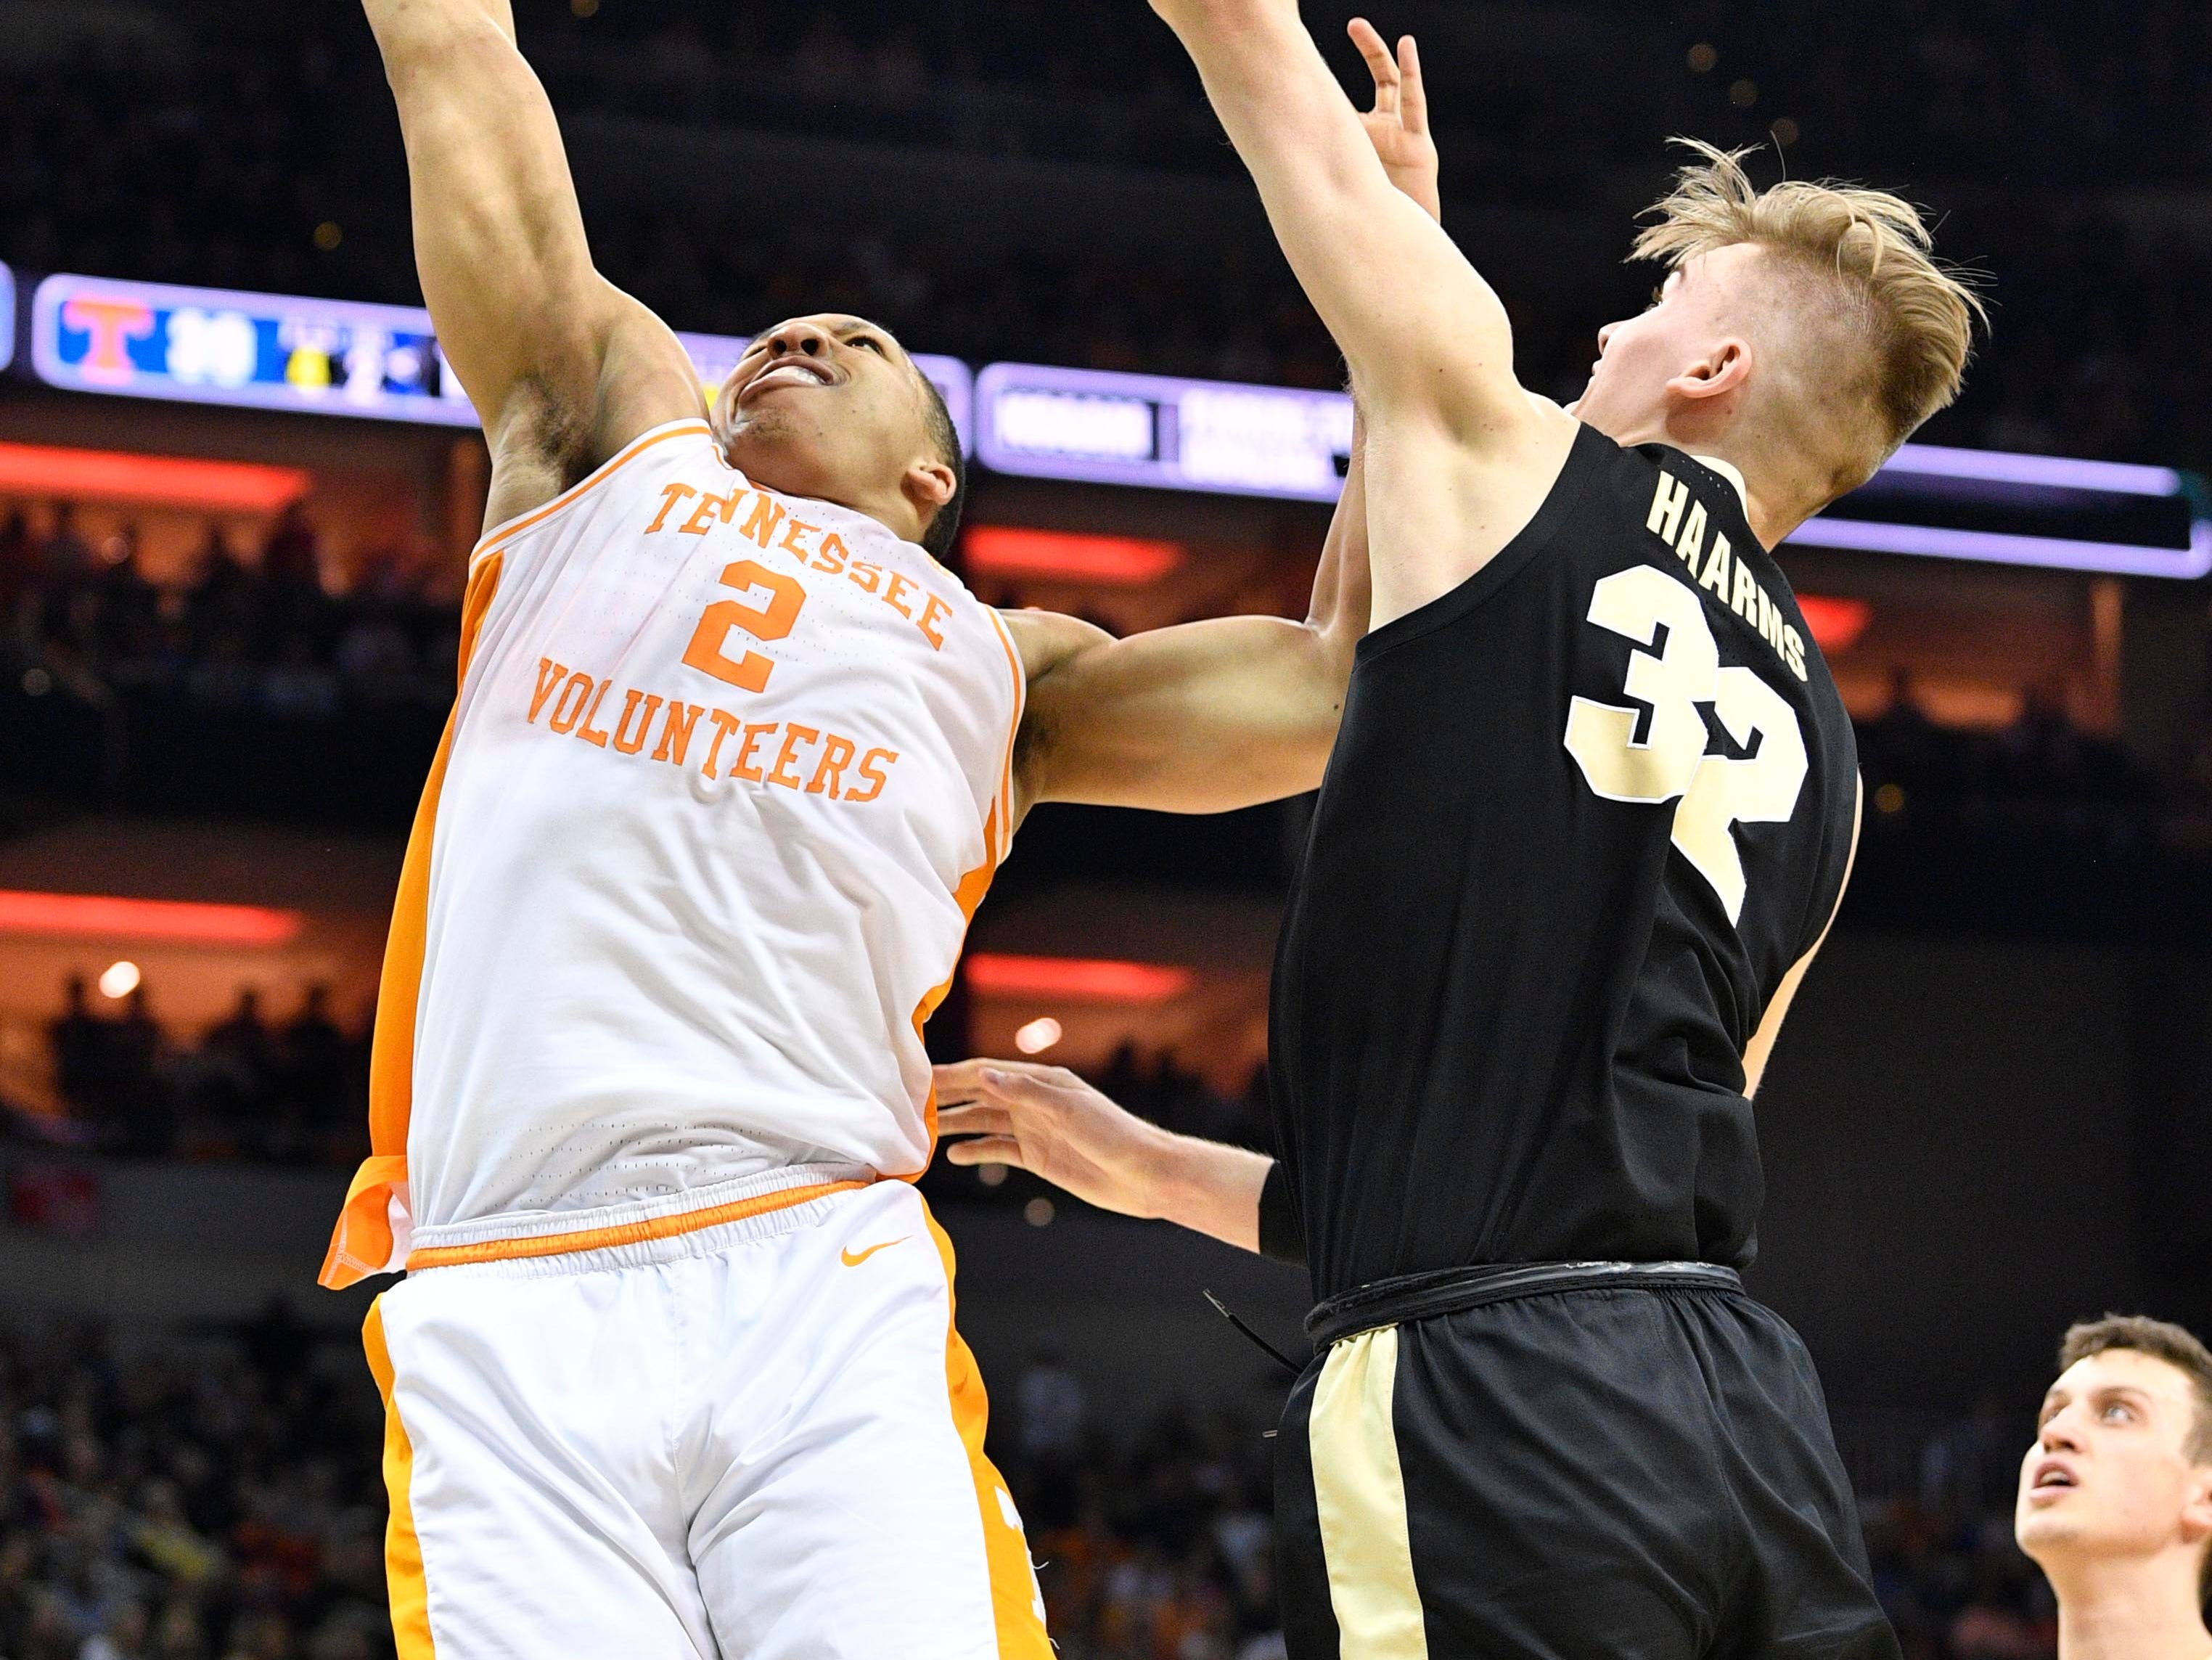 Mar 28, 2019; Louisville, KY, United States; Tennessee Volunteers forward Grant Williams (2) goes up for a shot as Purdue Boilermakers center Matt Haarms (32) defends during the second half in the semifinals of the south regional of the 2019 NCAA Tournament at KFC Yum Center. Mandatory Credit: Jamie Rhodes-USA TODAY Sports